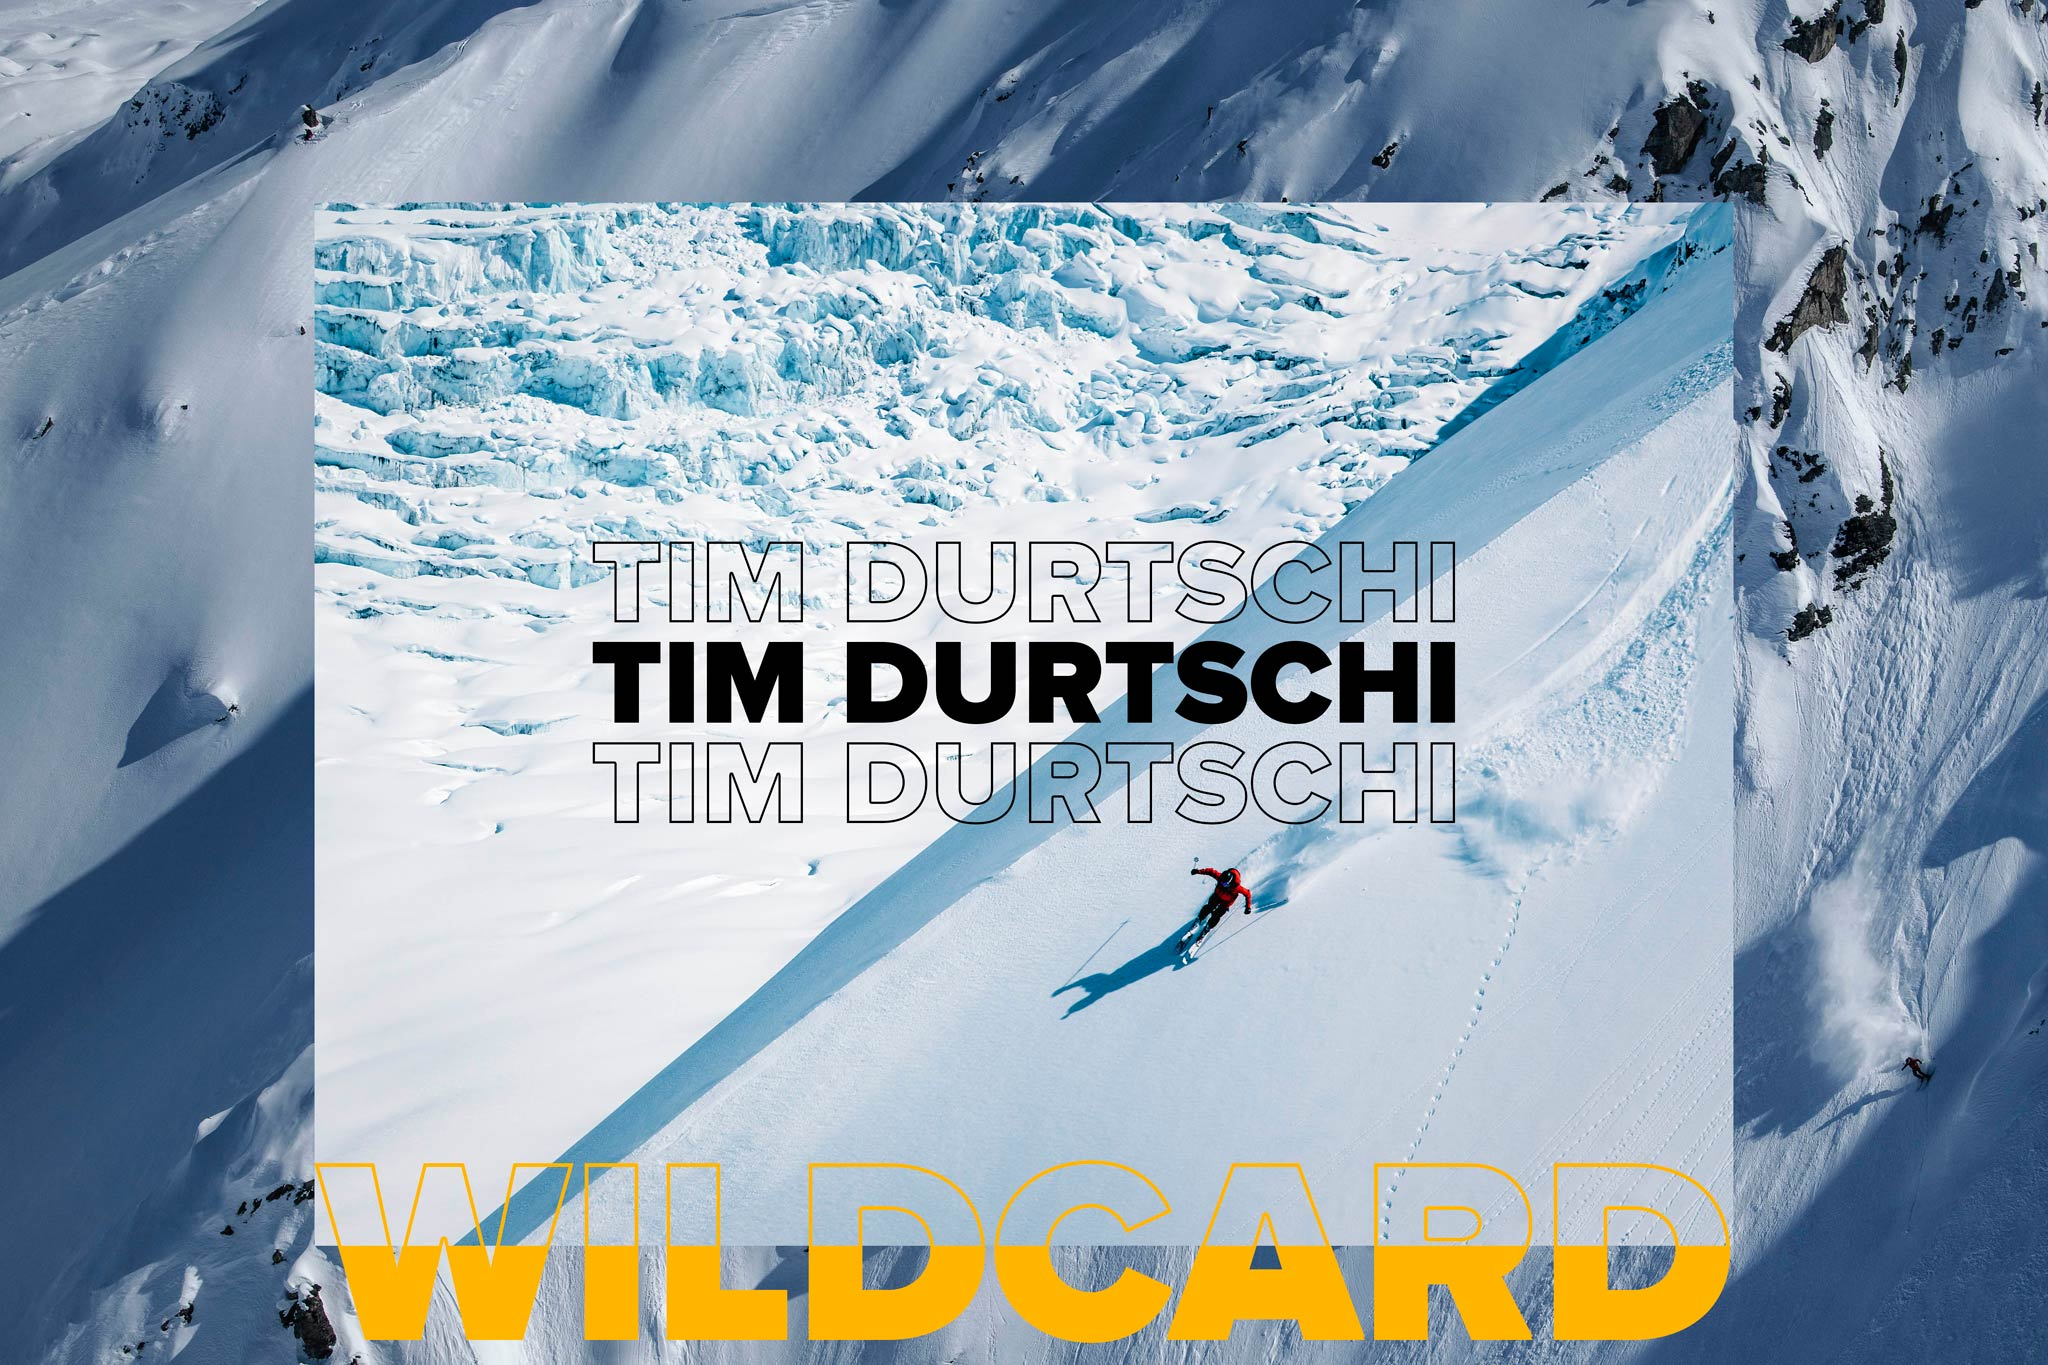 Tim Durtschi startet bei der Freeride World Tour 2020!